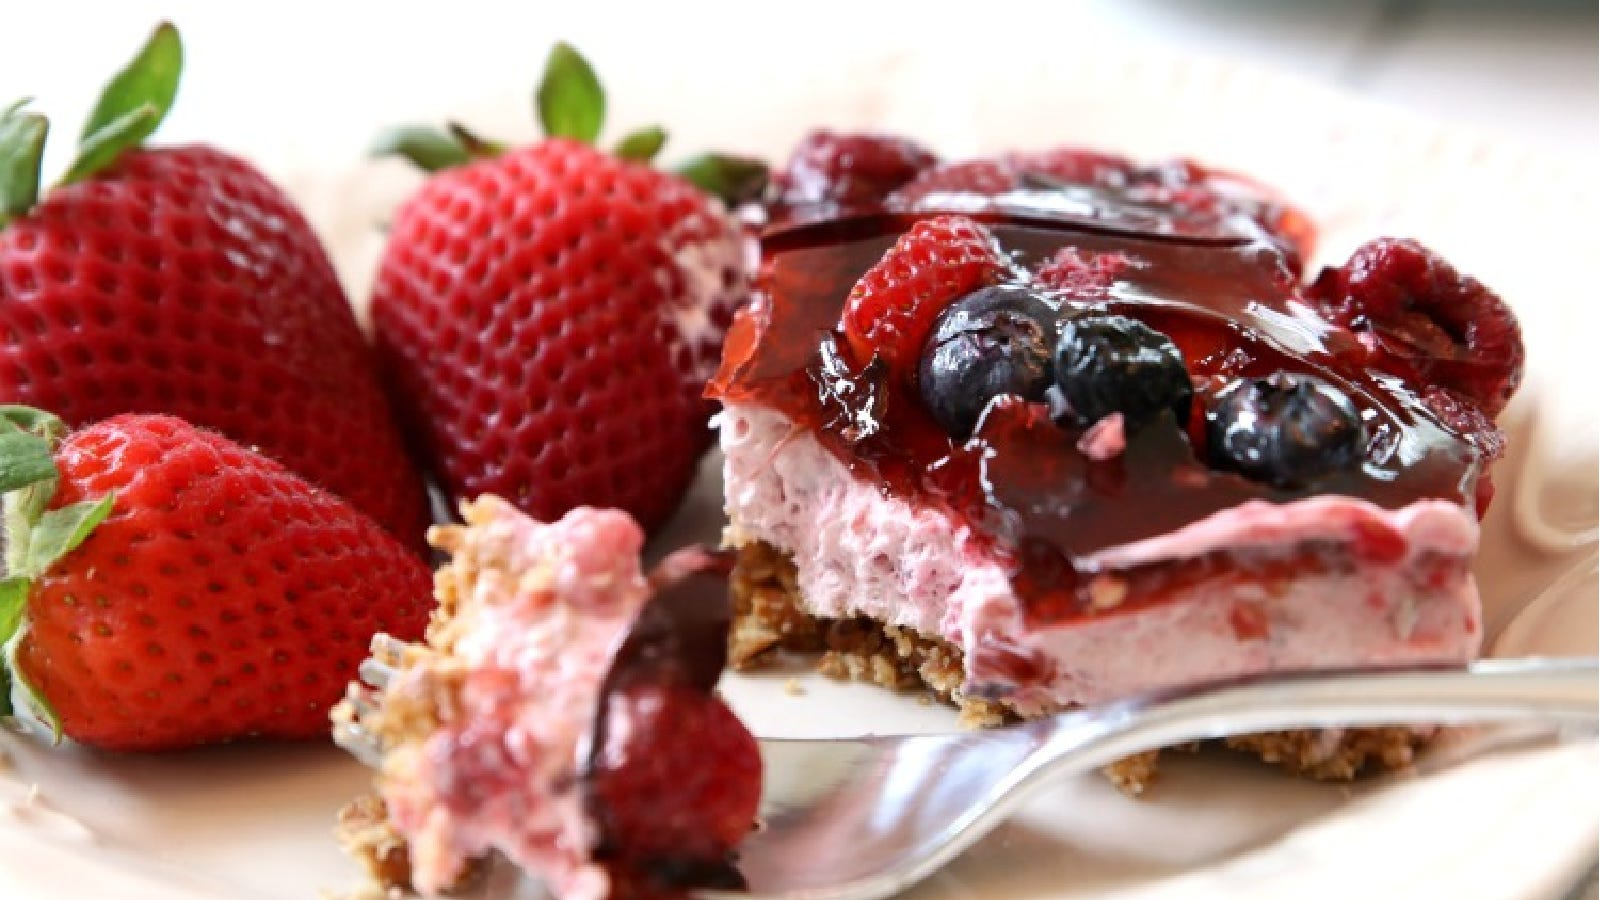 A square of berry jell-O pretzel salad topped with fresh berries and a side of strawberries.